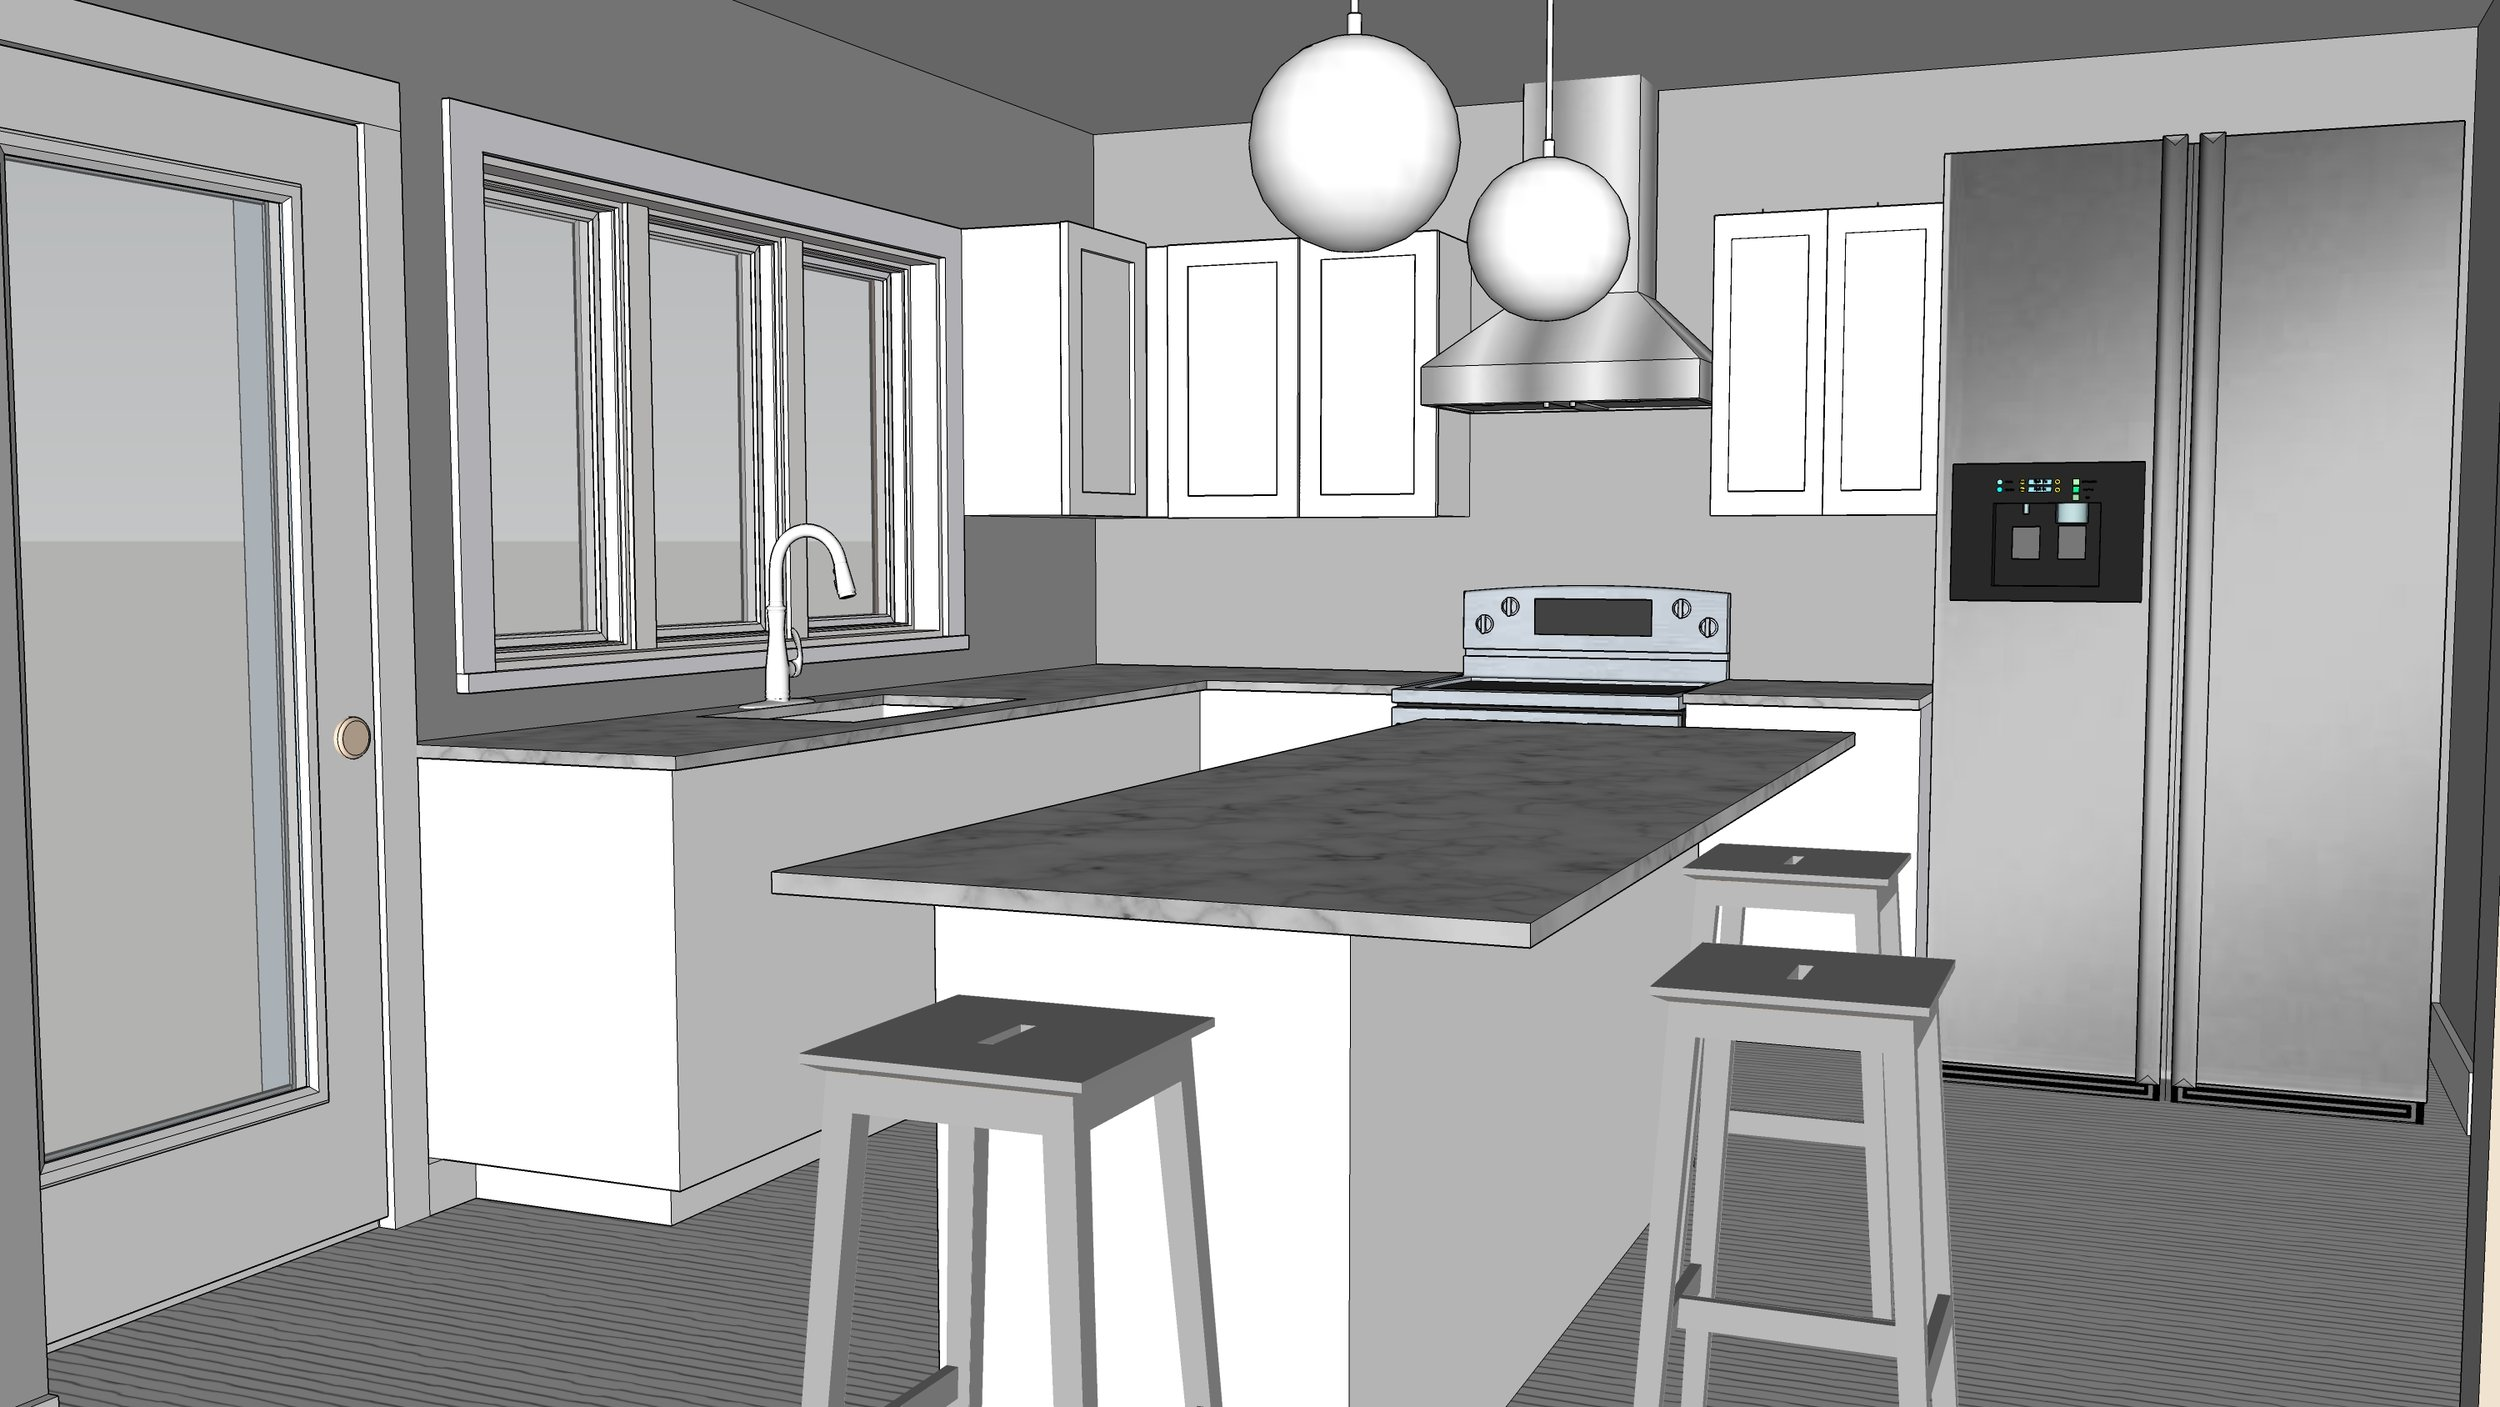 By helping to determine the preferred location for the various design elements, 3D renderings are a great visual aid in the design process.